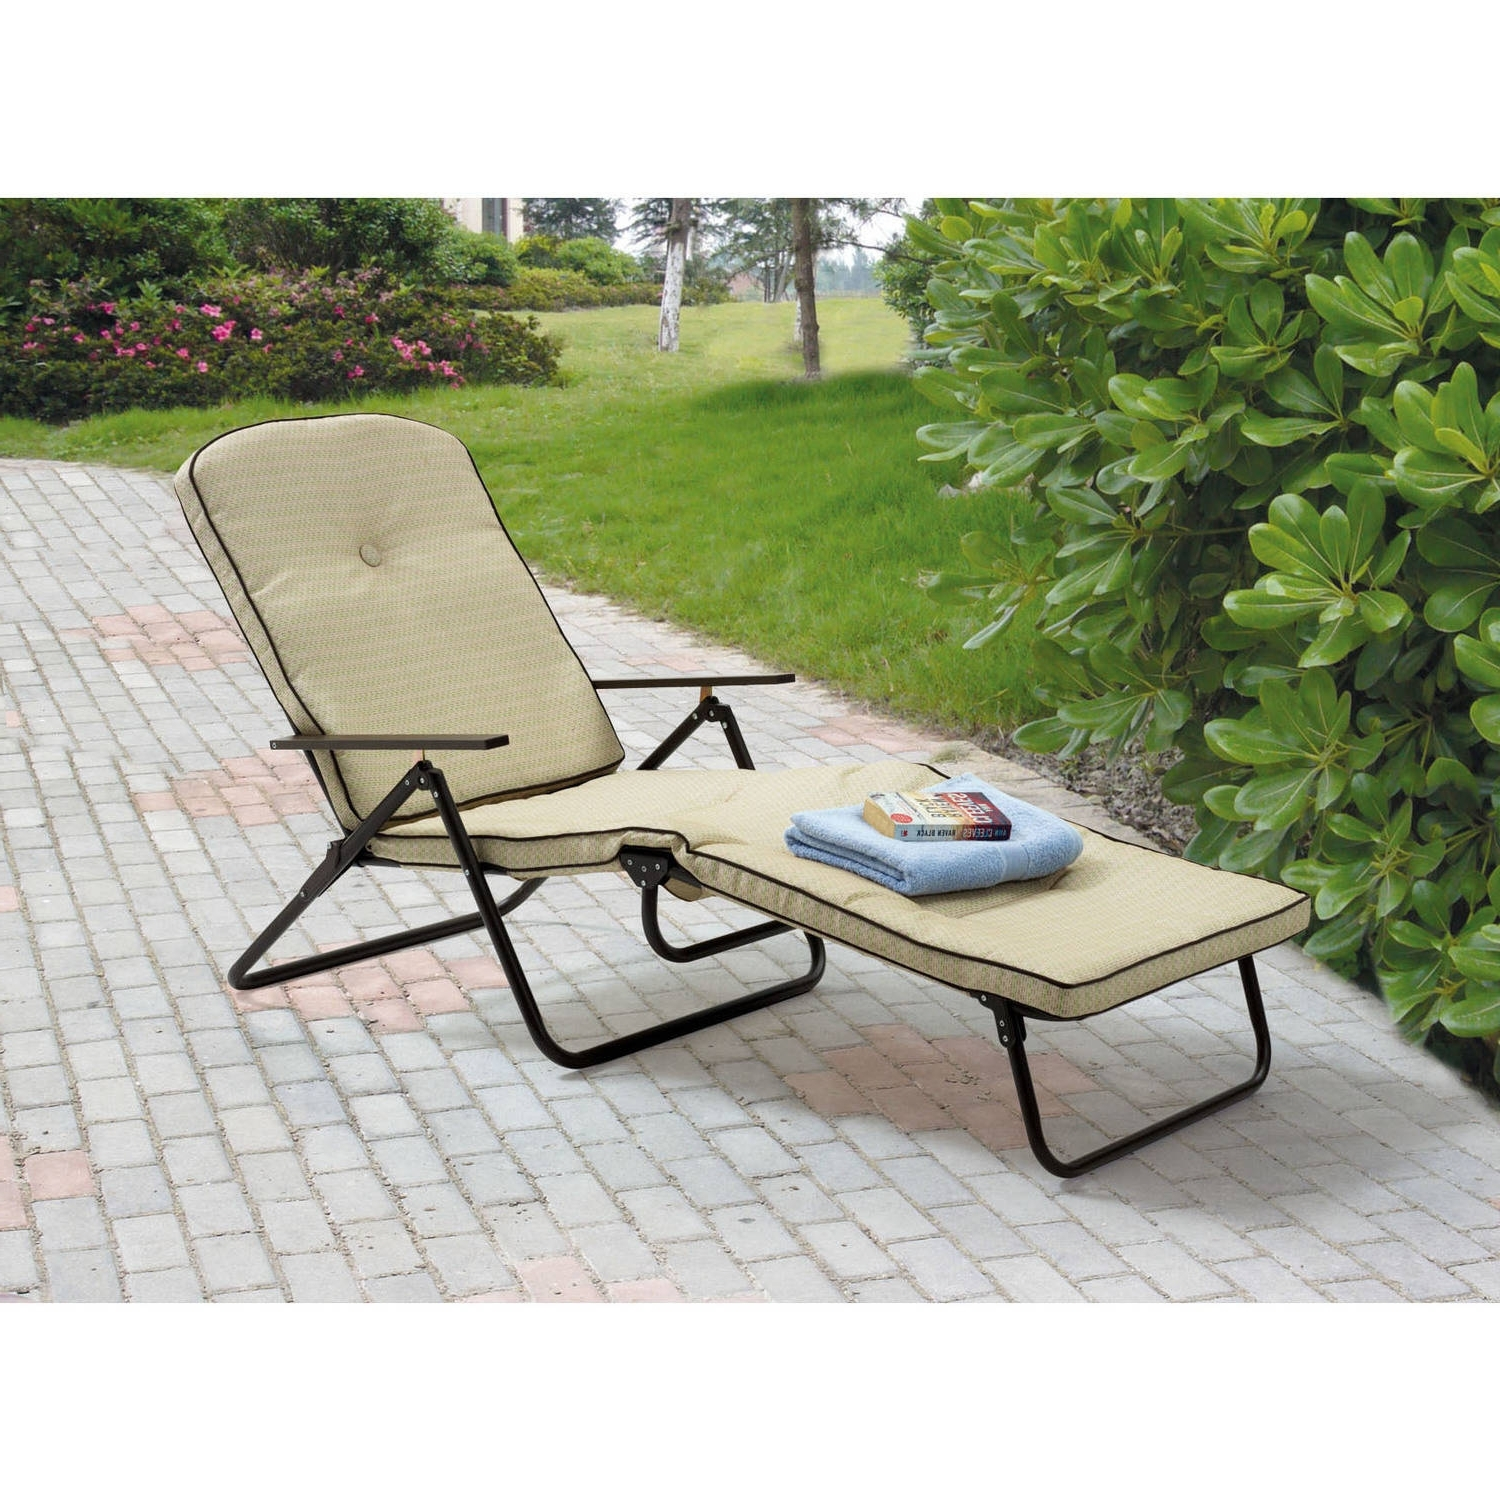 Outdoor Chaise Lounge Chairs At Walmart For 2017 Mainstays Sand Dune Outdoor Padded Folding Chaise Lounge, Tan (View 10 of 15)